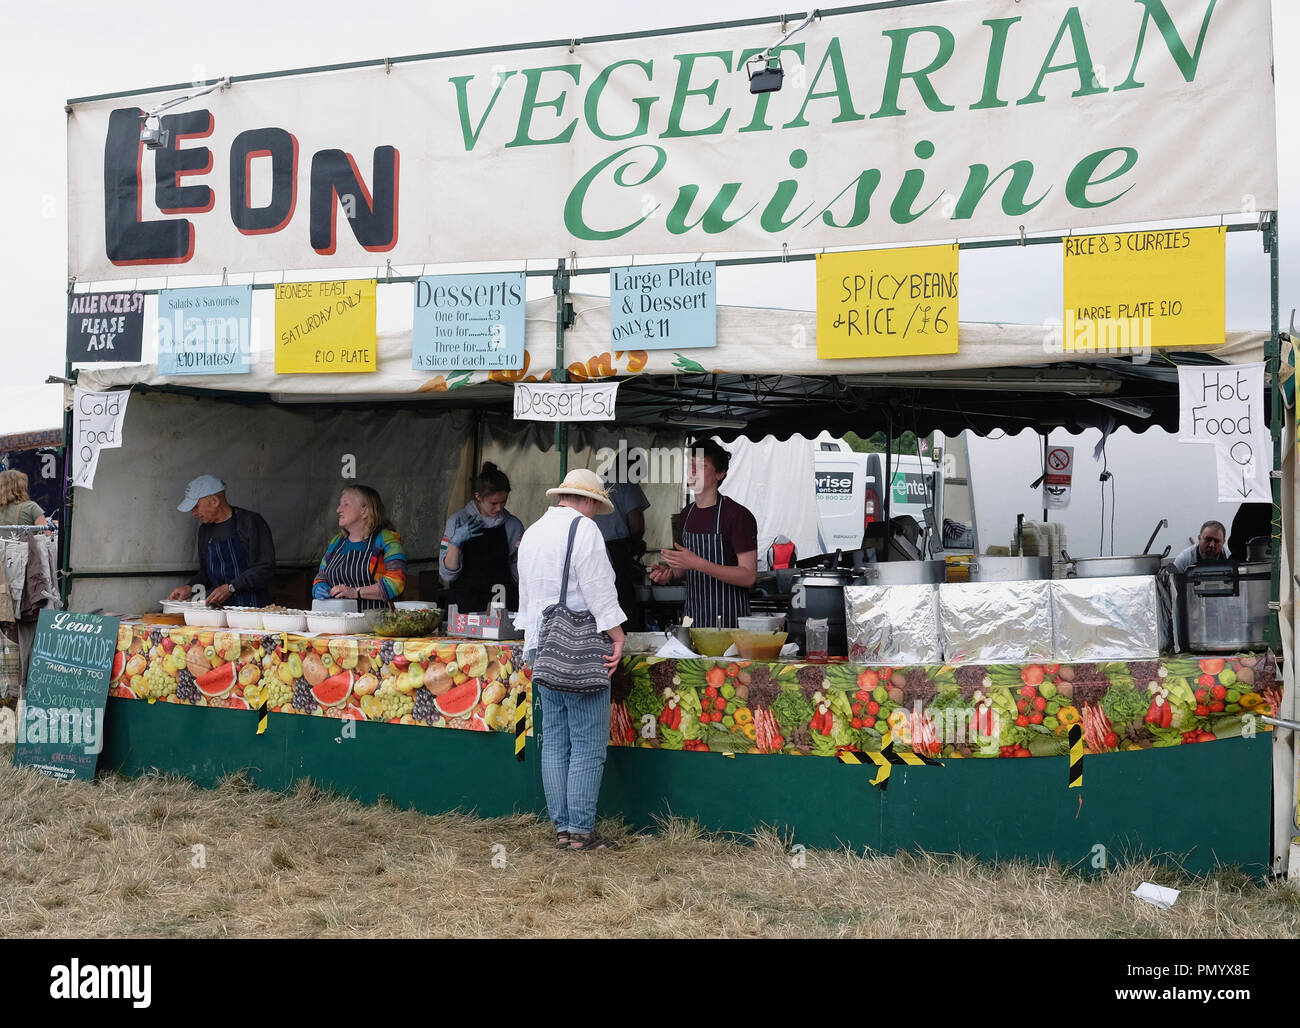 England, Oxfordshire, Leon's Vegetarian food stall at Fairport's Cropredy Convention. - Stock Image